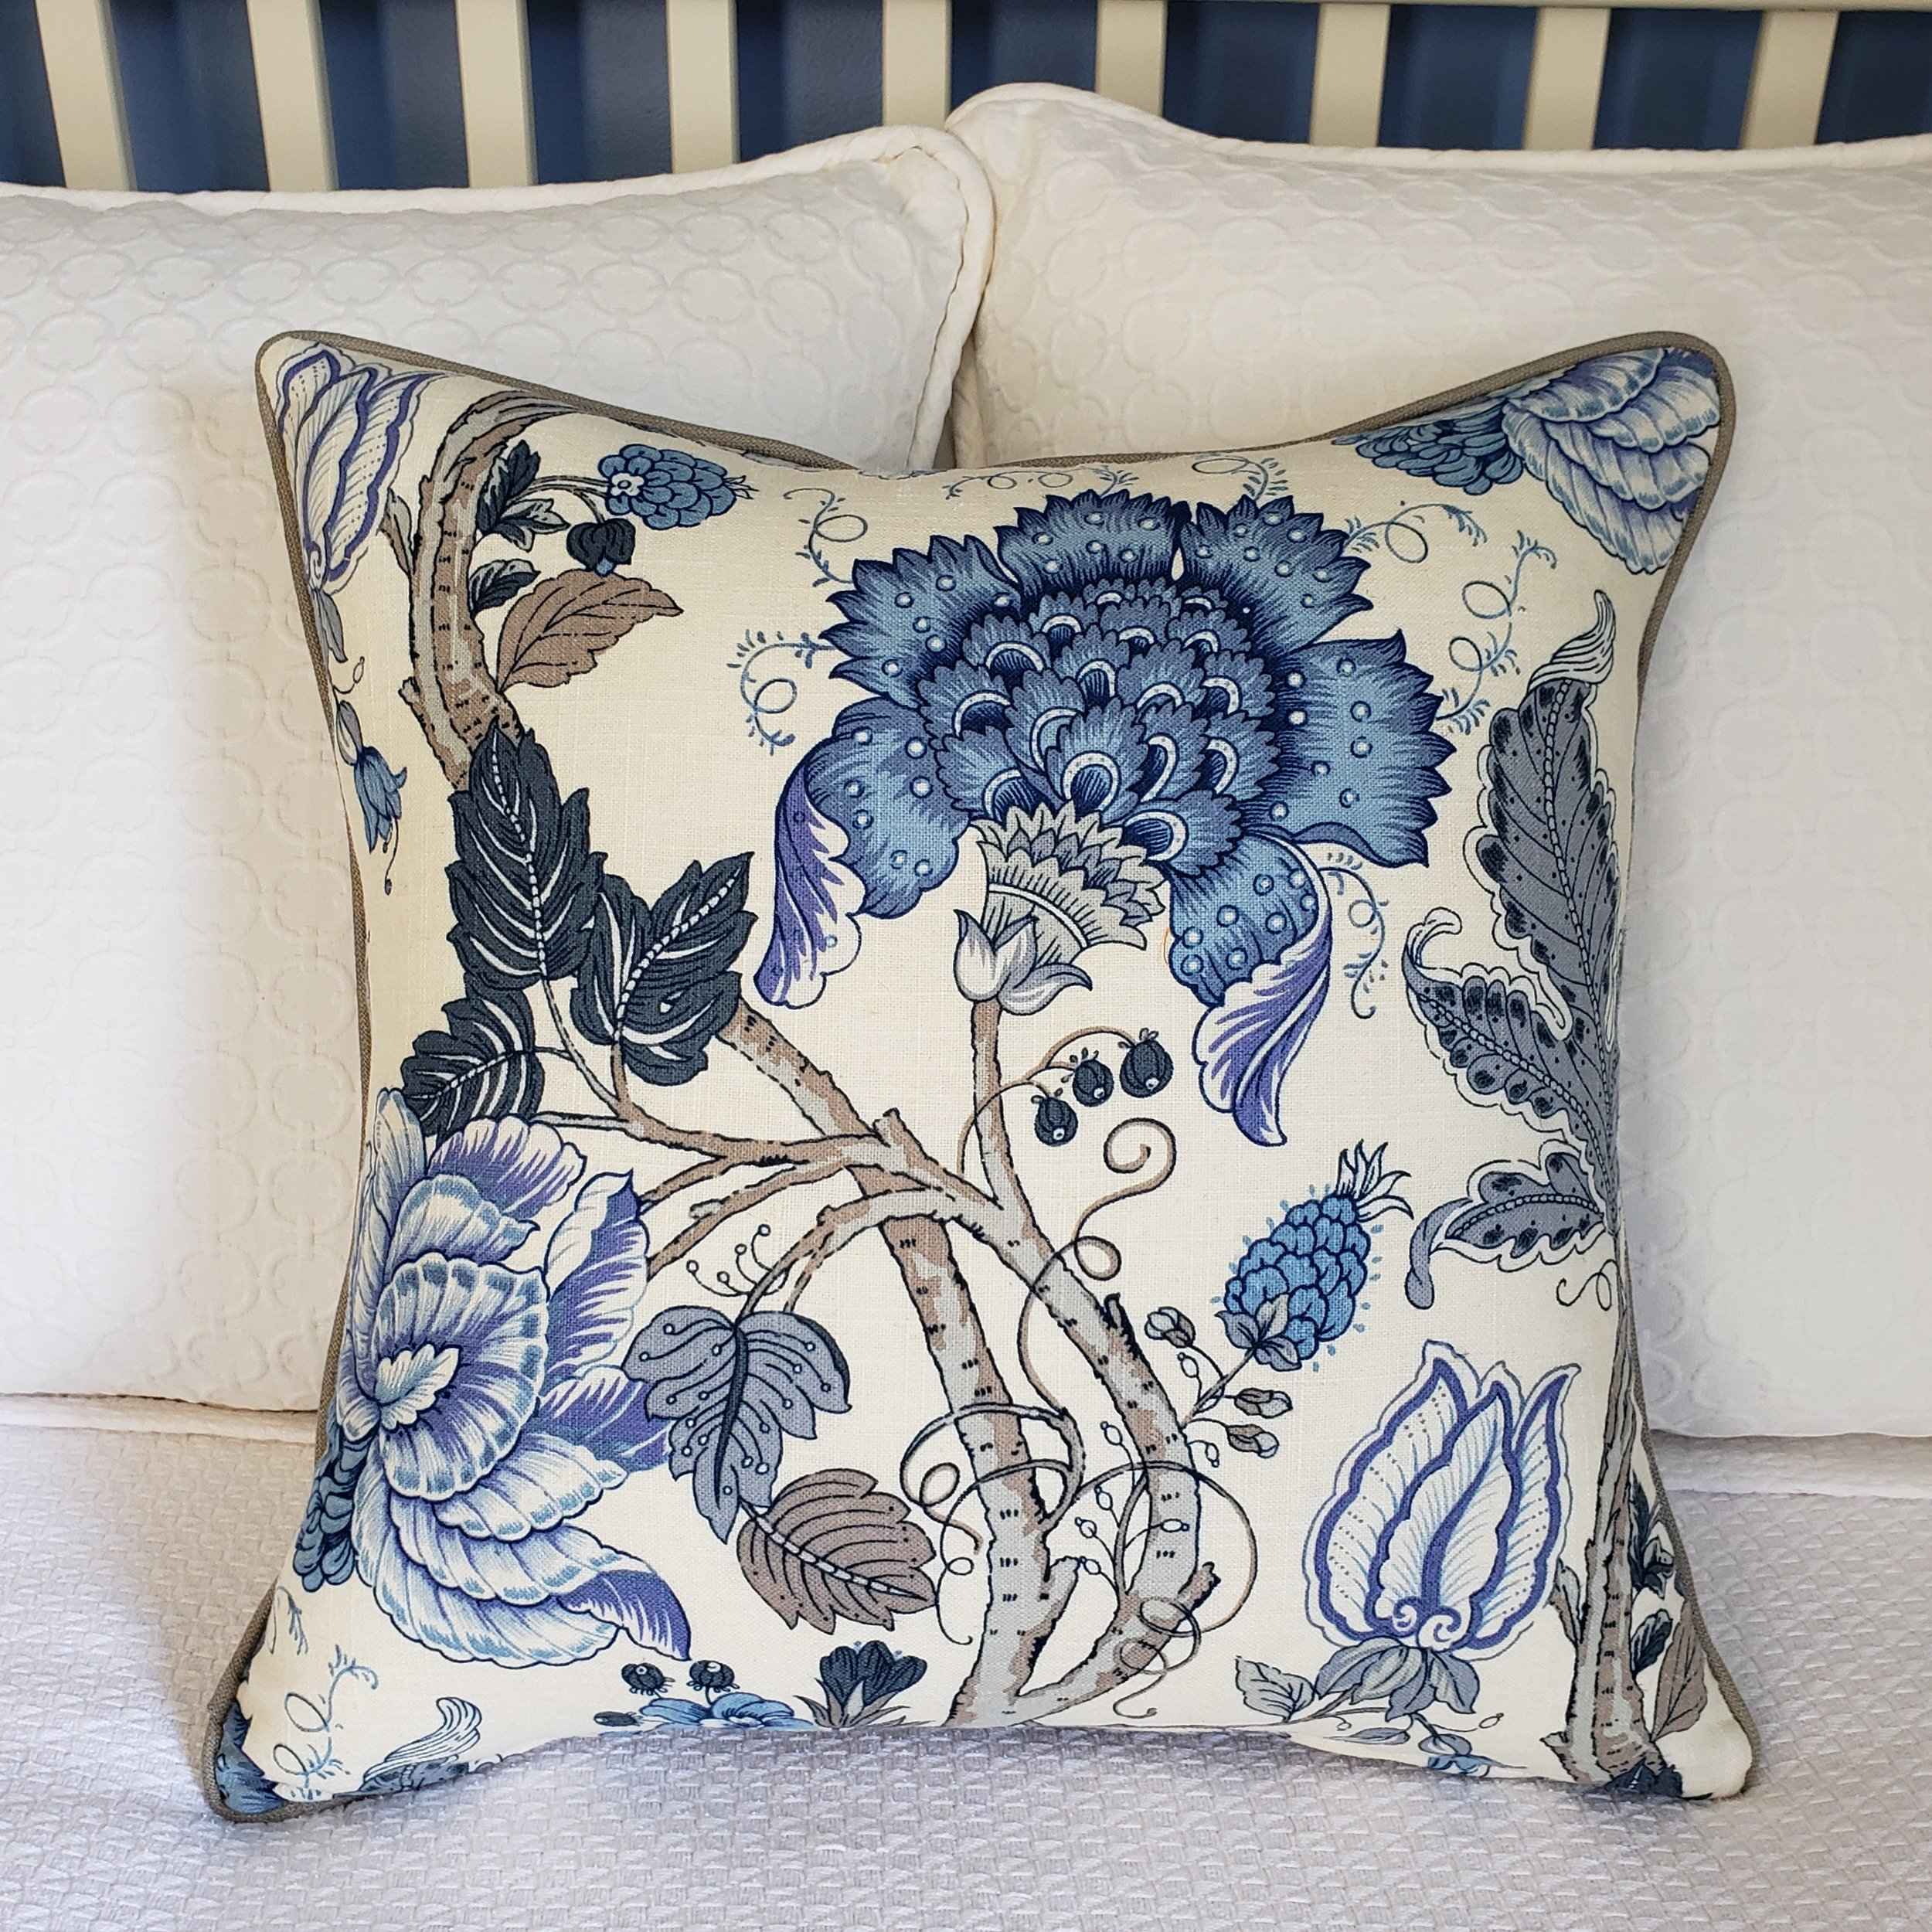 Coastal Style Hamptons Style Jacobean Pillow Floral Pillow Blue Floral Pillow Linen Pillow Chinoiserie Pillow French Country $70